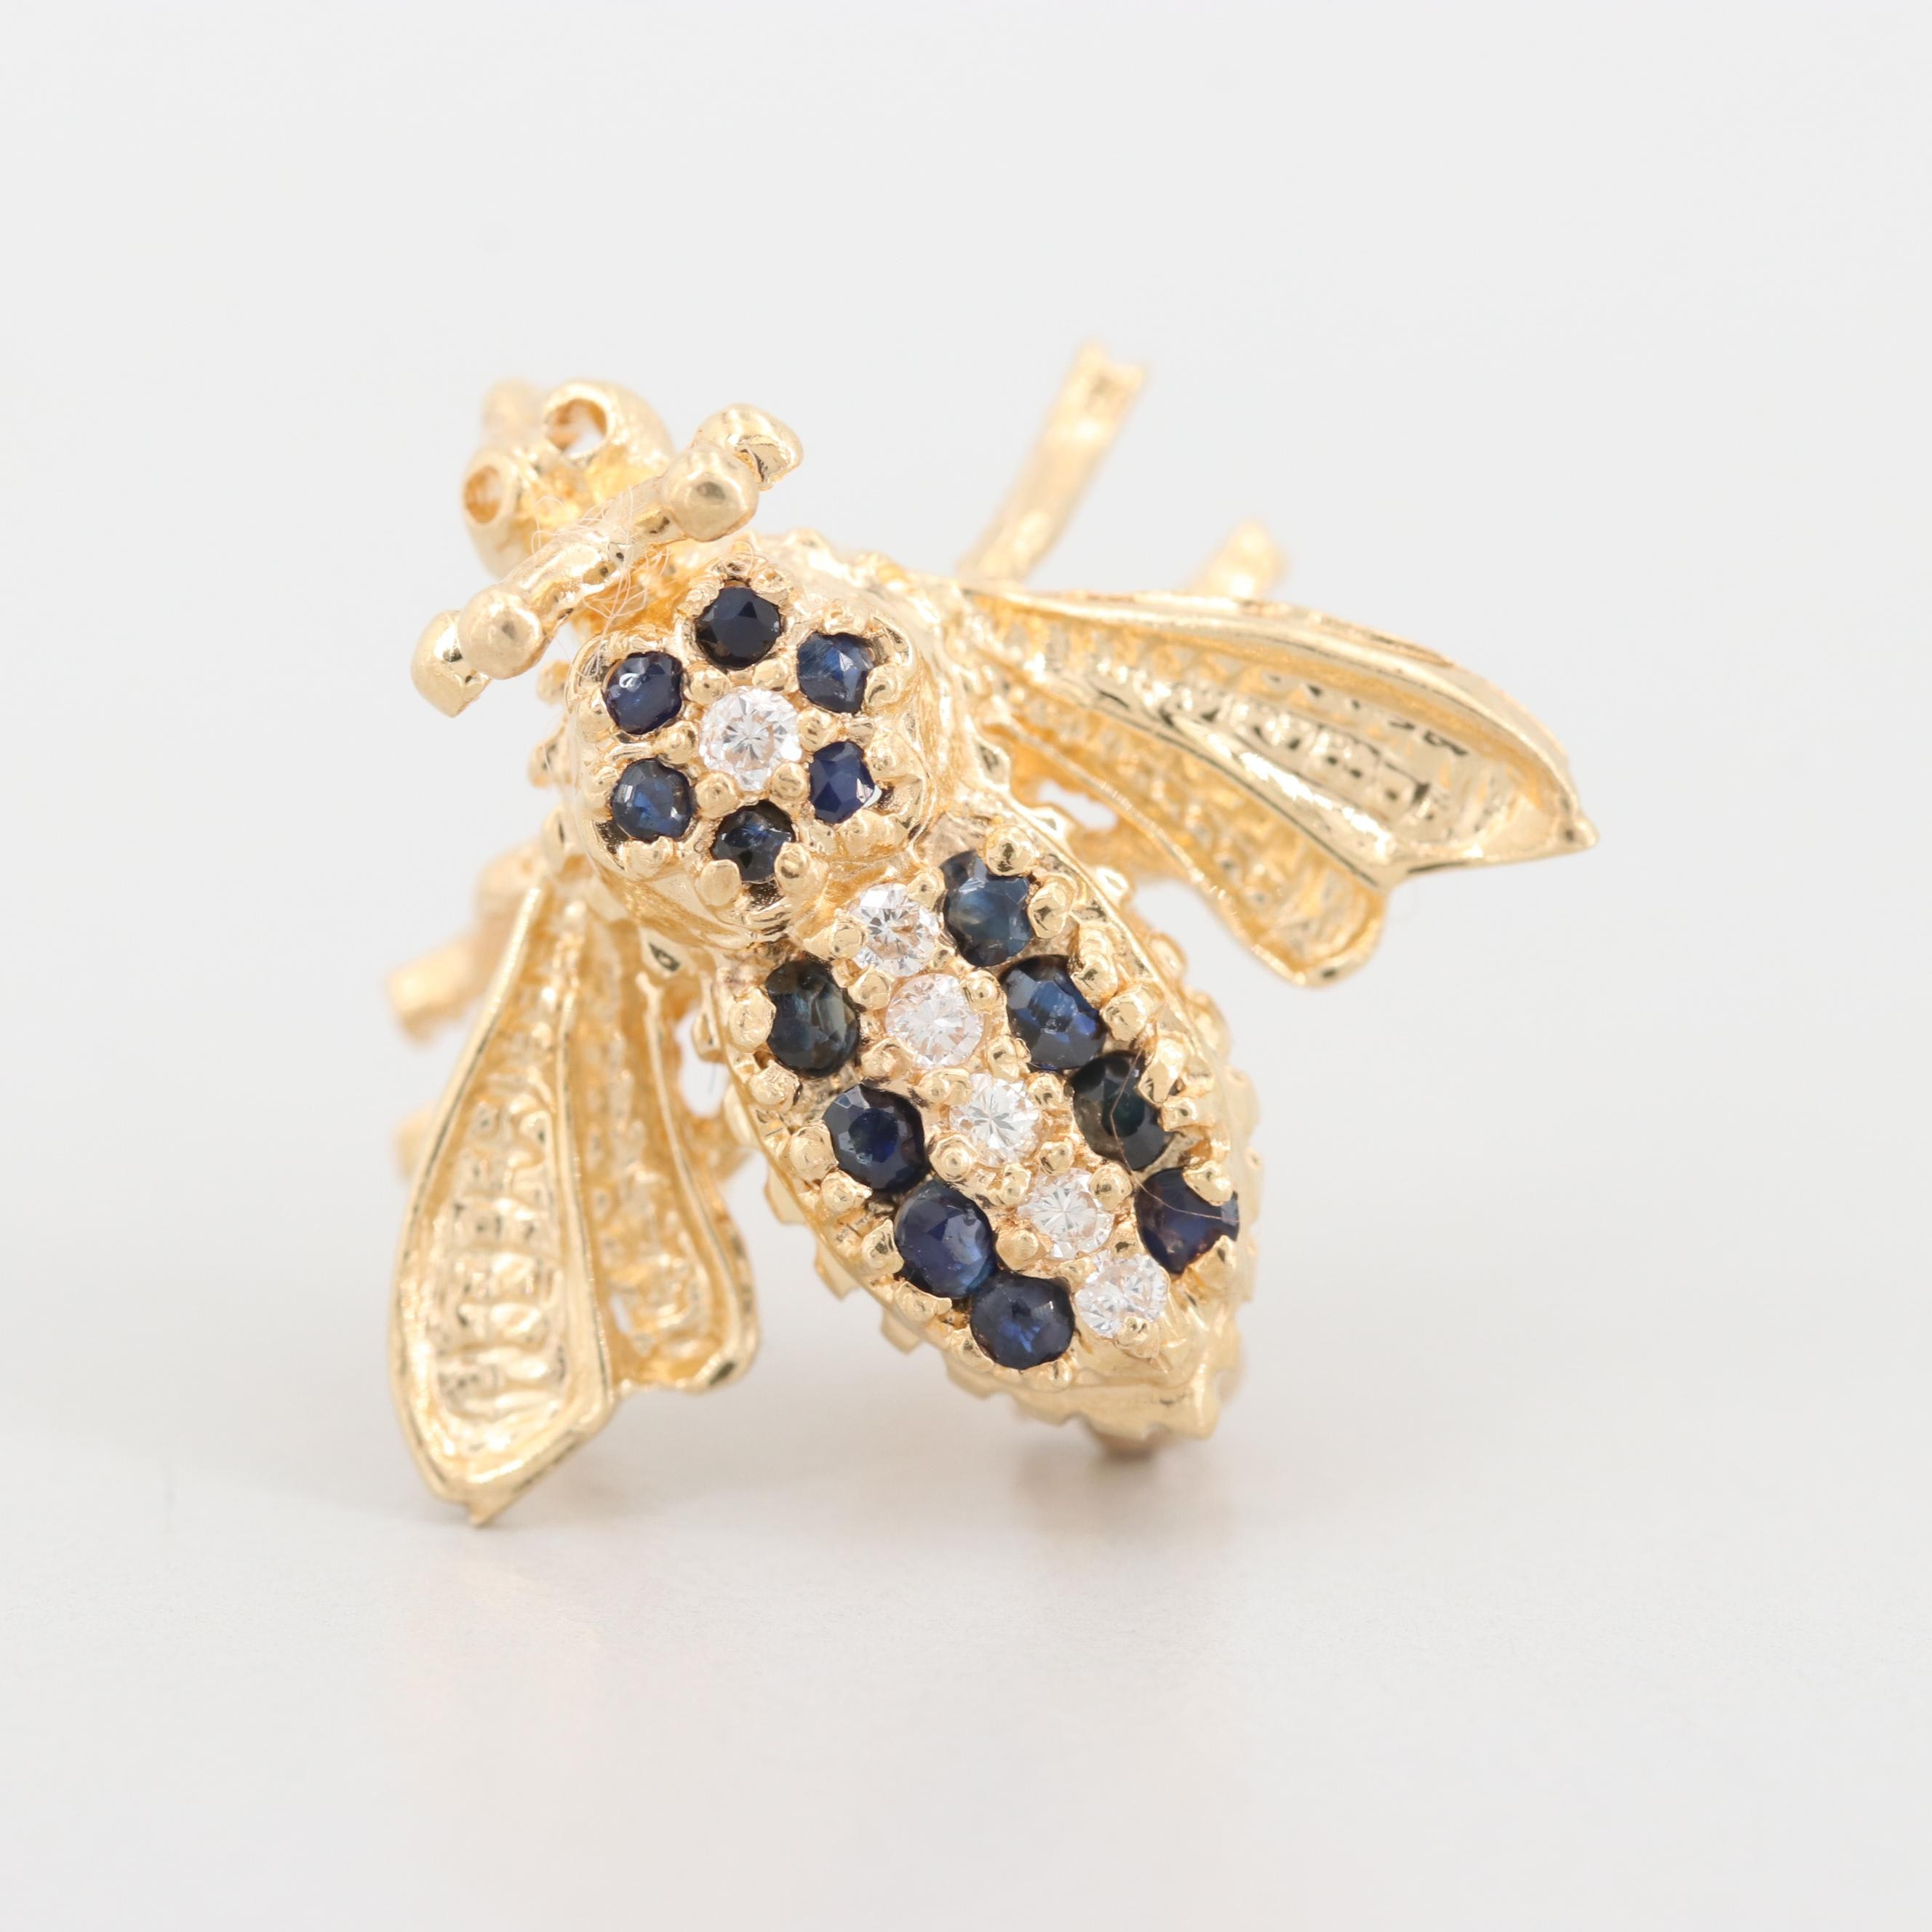 14K Yellow Gold Diamond and Sapphire Insect Brooch